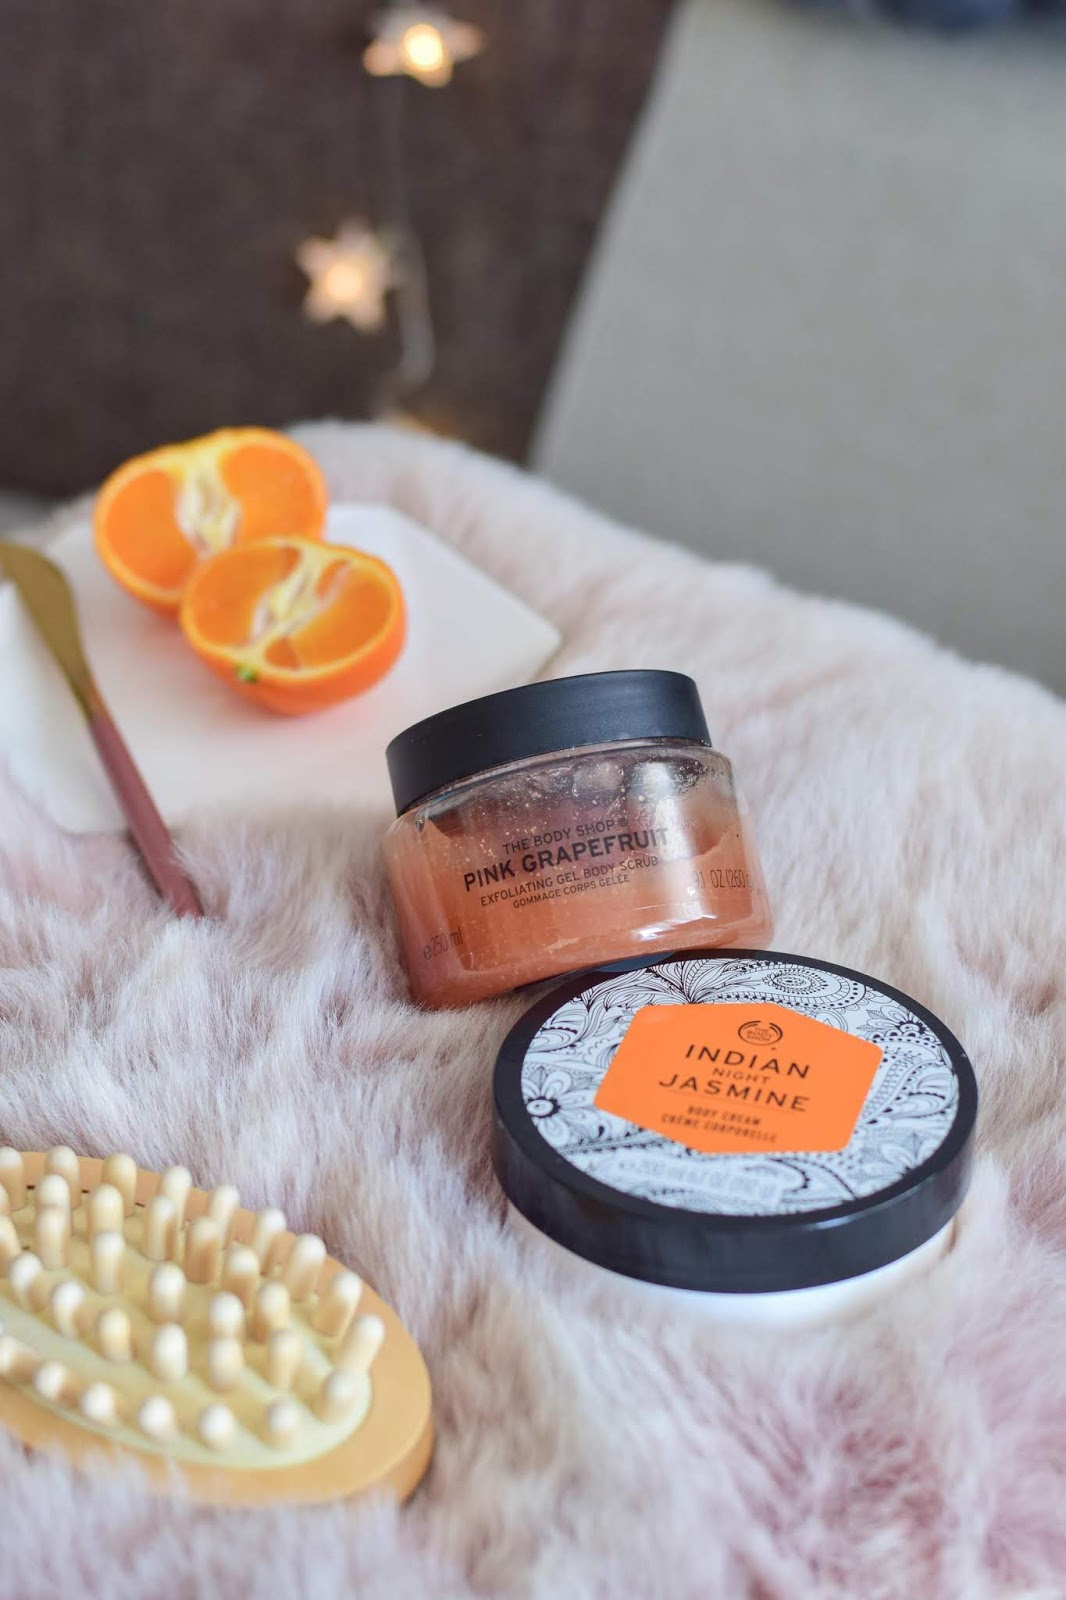 The Body Shop, scrub Różowy Grejpfrut i krem Indian Night Jasmin | Już wiem, o co tyle szumu!